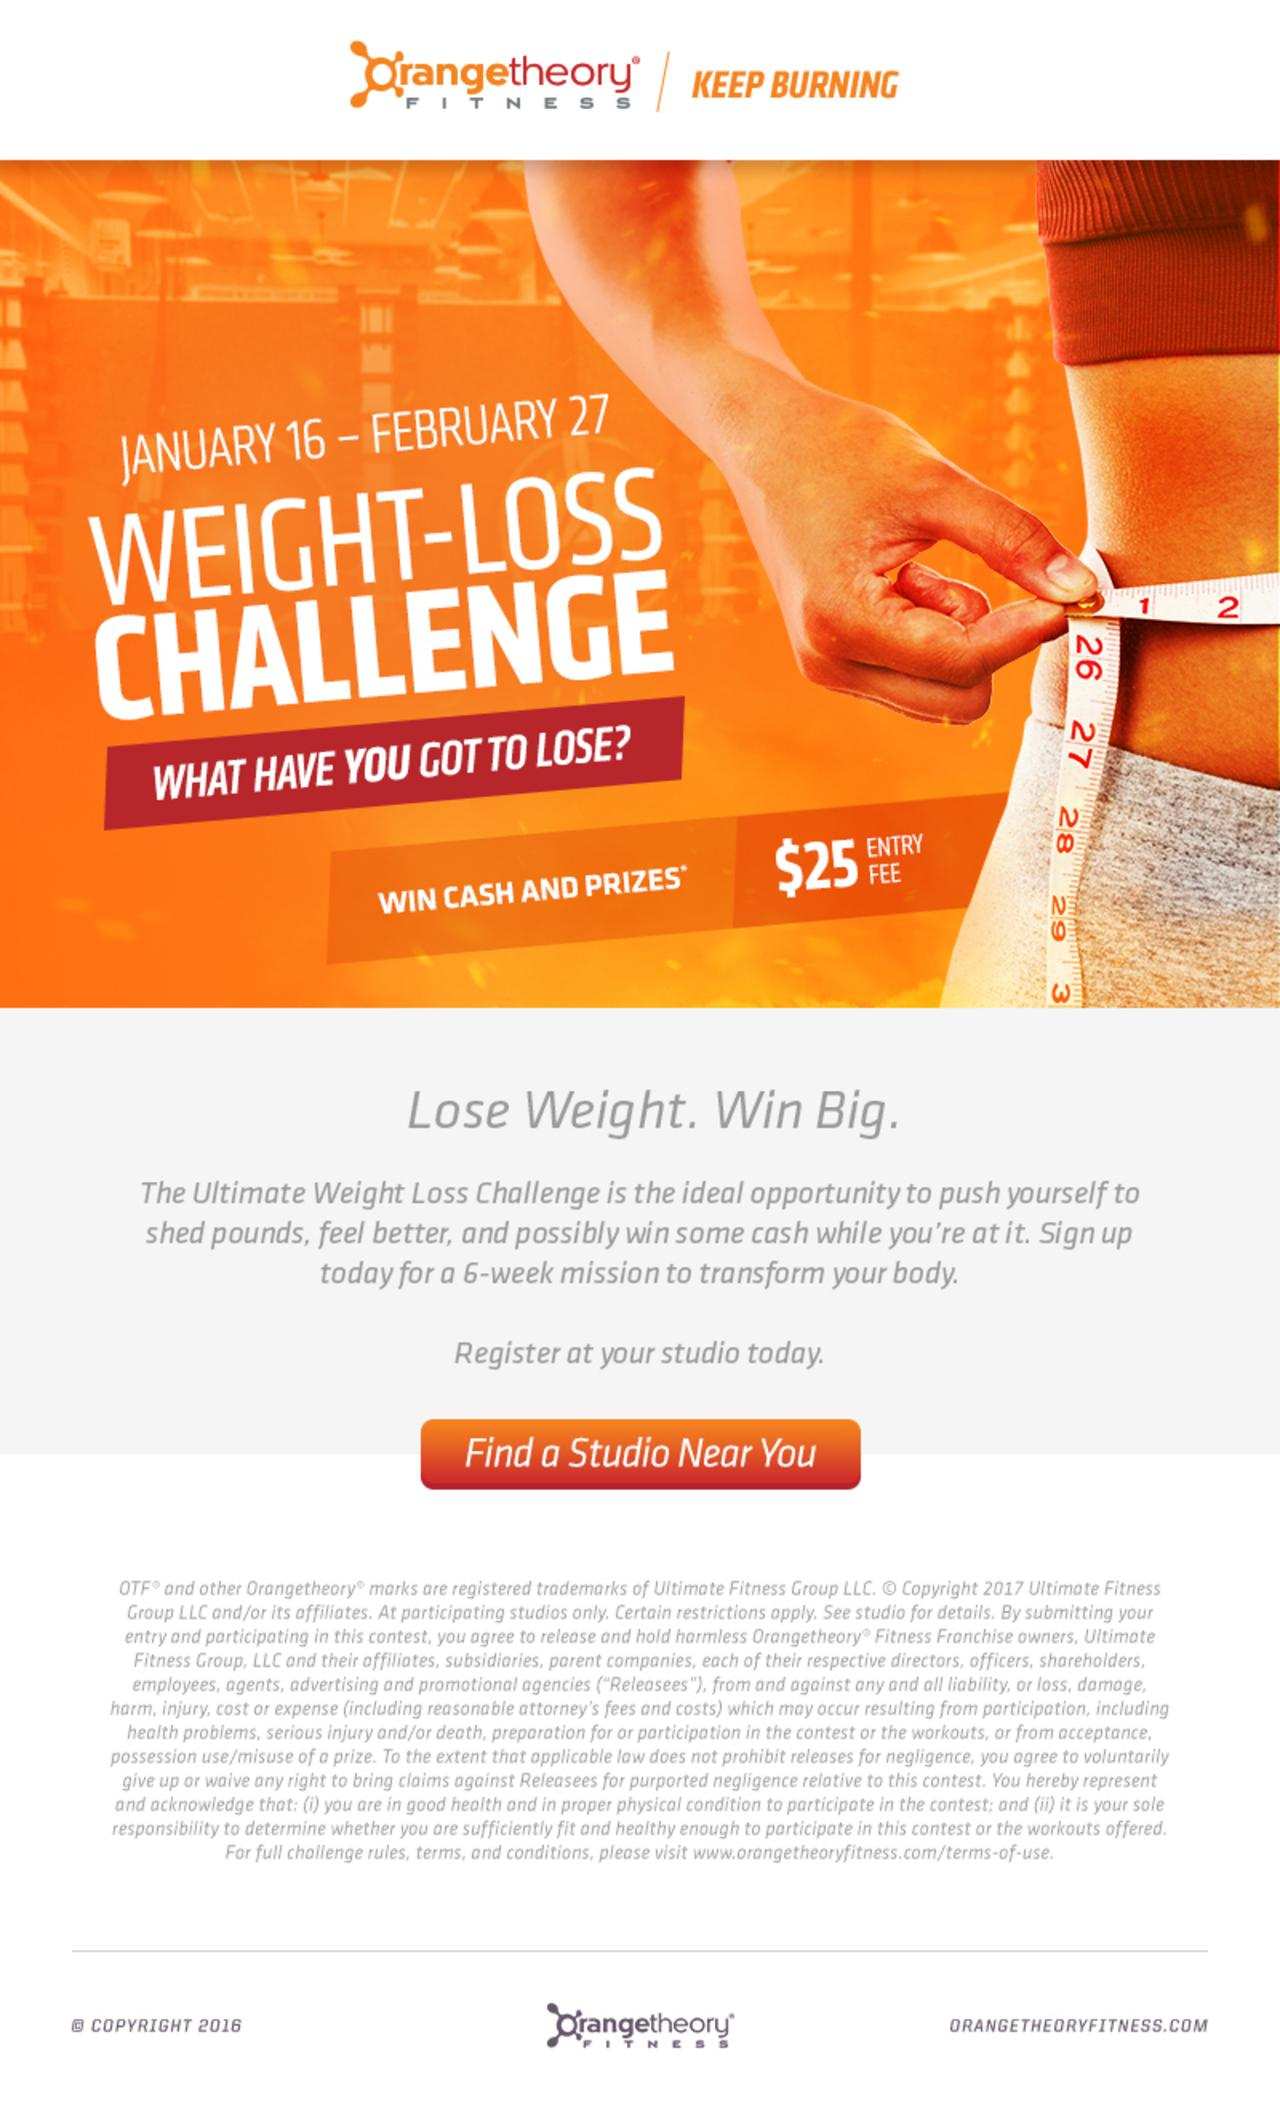 Pregnancy weight loss surgery image 7